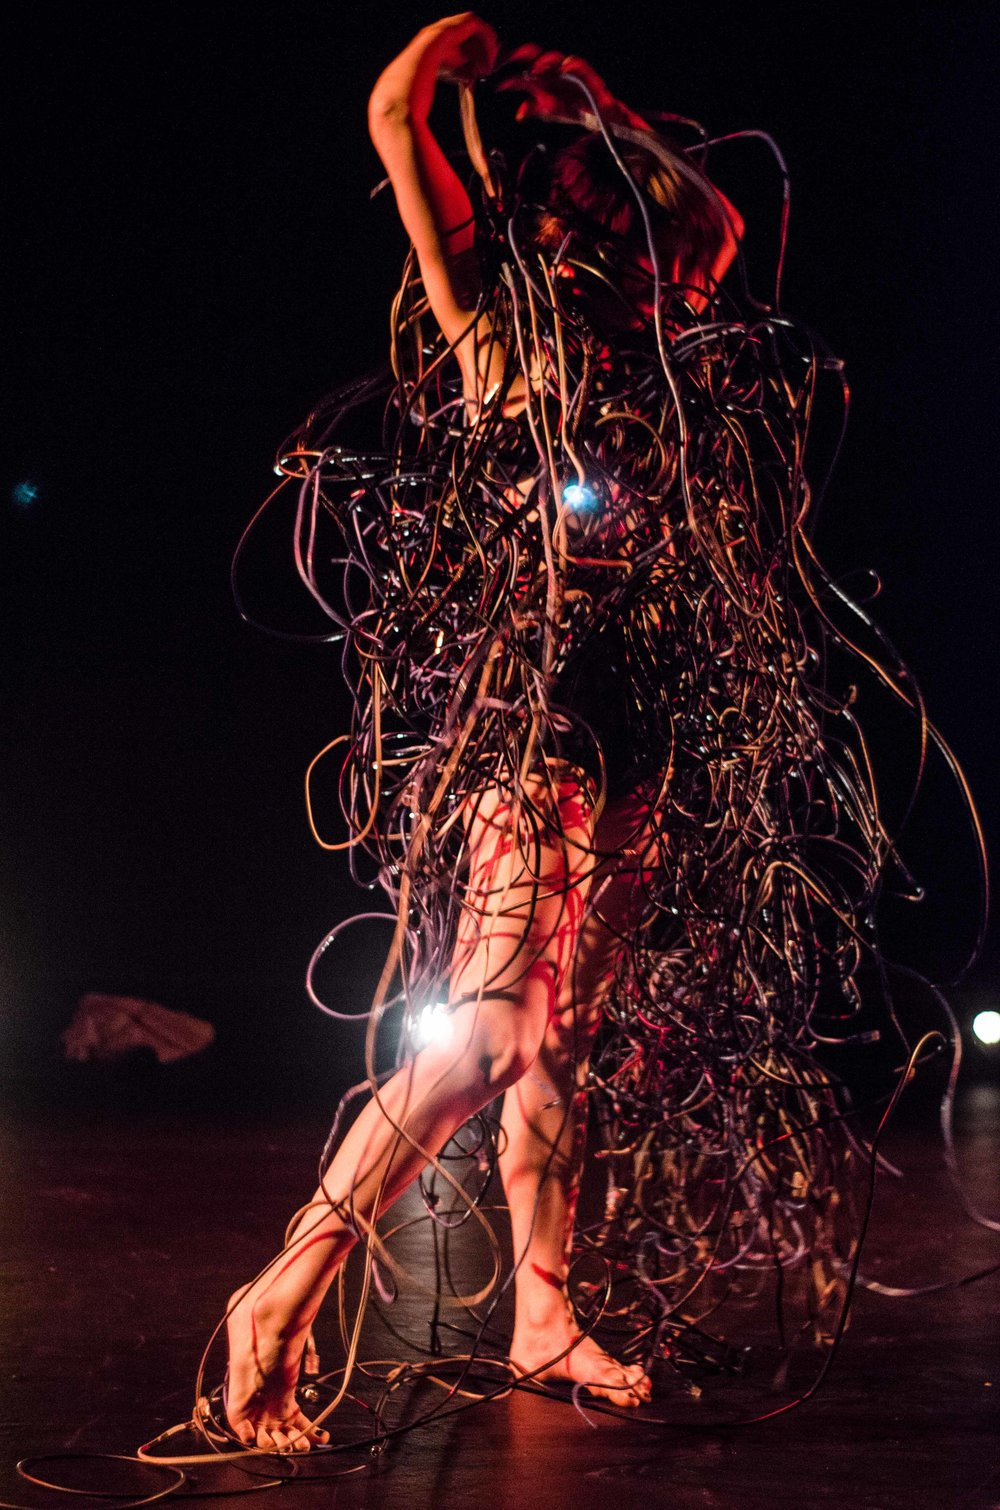 Sarah Fiddaman performing in DirtyFeet / Chronology Arts collaboration choreographed by Sarah-Vyne Vassallo, composed by Andrew Batt-Rawden. Photography by Heleana Genaus (2013)